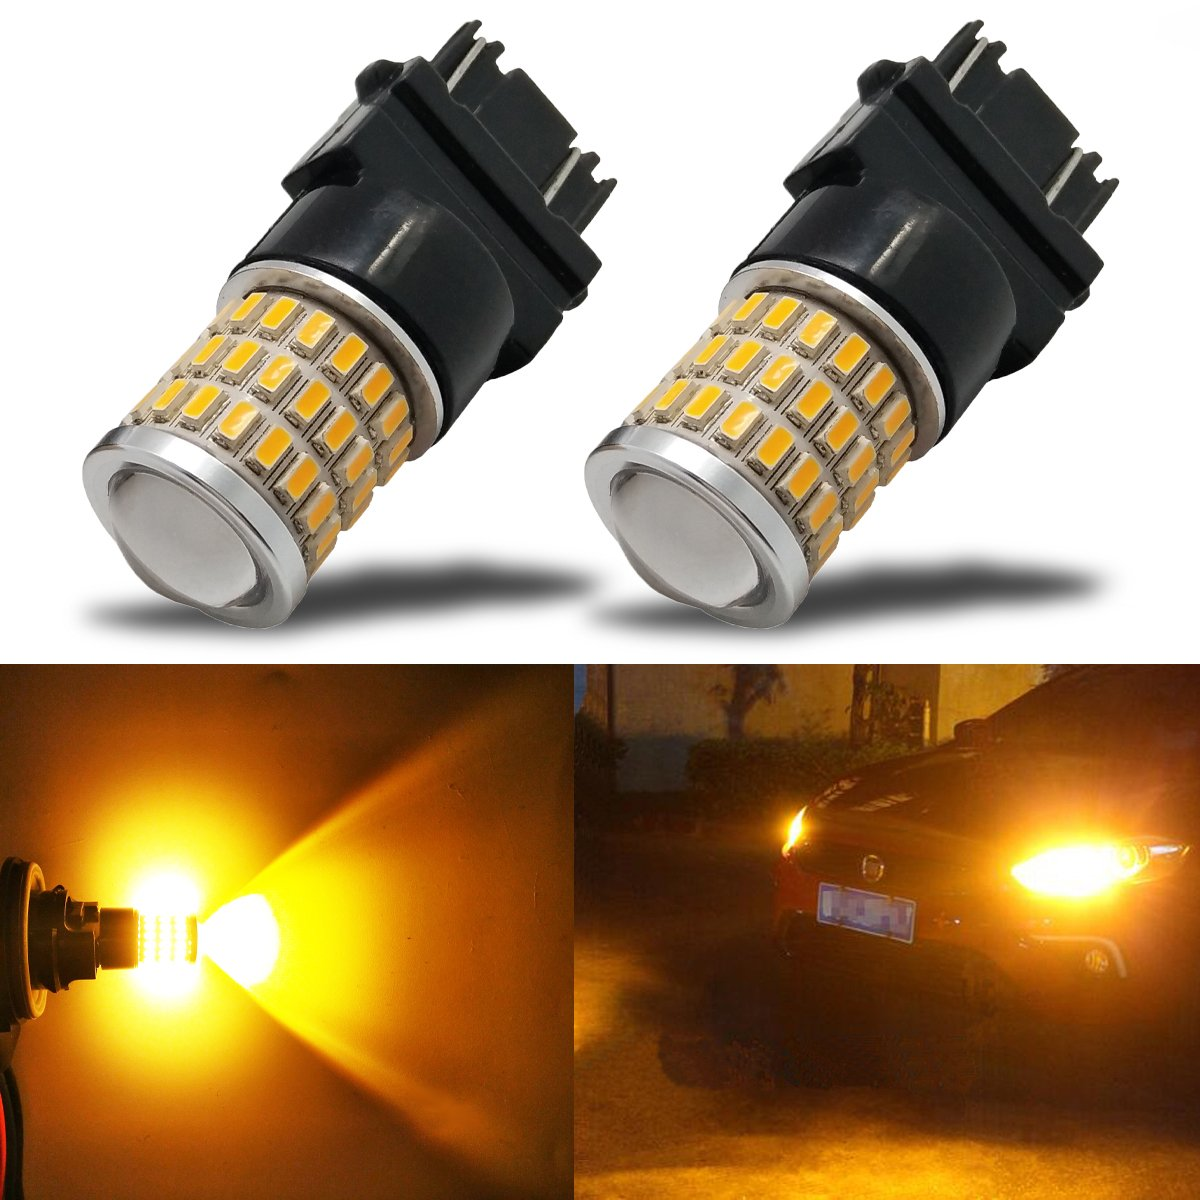 iBrightstar Newest 9-30V Extremely Bright Low Power 168 175 194 2825 W5W T10 Wedge LED Bulbs with Projector for Side Marker Light, Amber Yellow